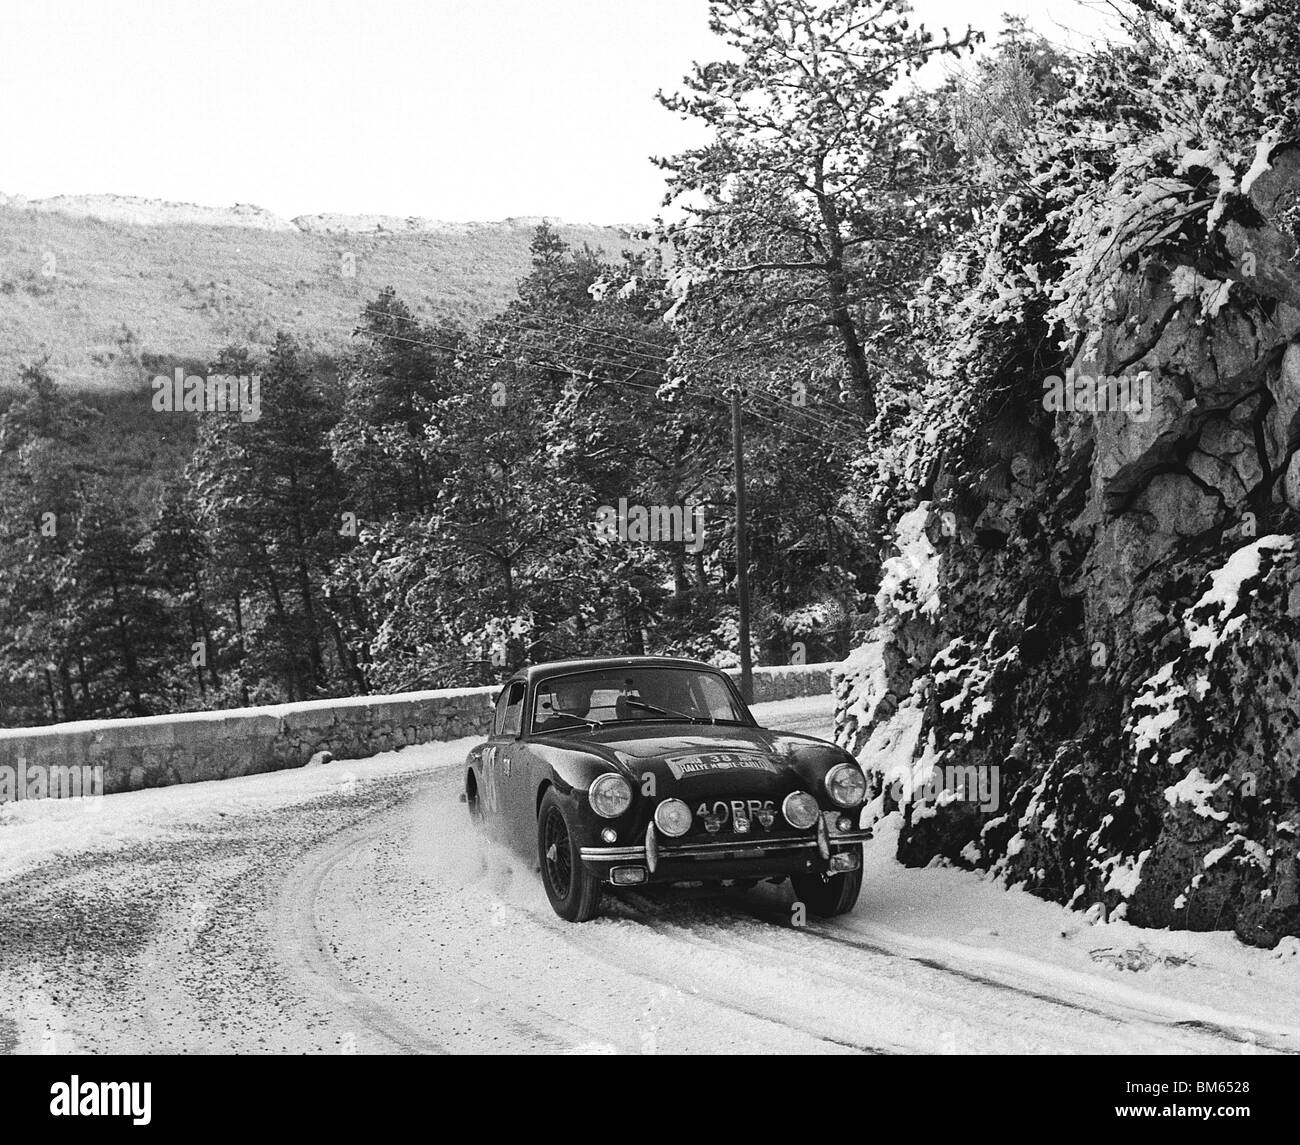 hight resolution of ac aceca driven by t clarke on the 1958 monte carlo rally stock image